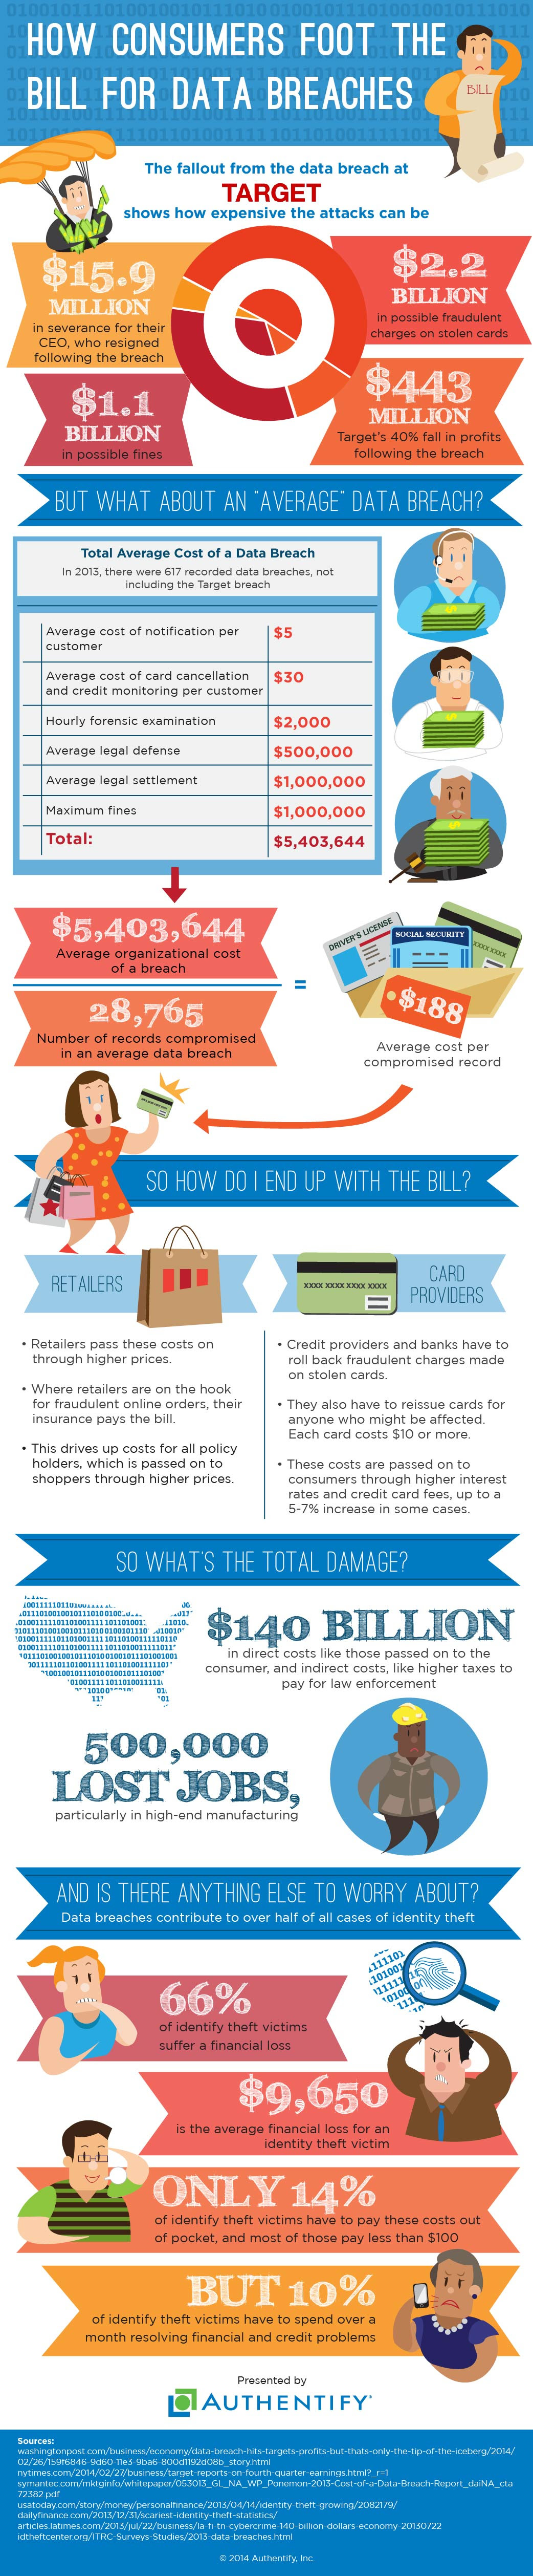 Infographic: How Consumers Foot The Bill For Data Breaches #infographic